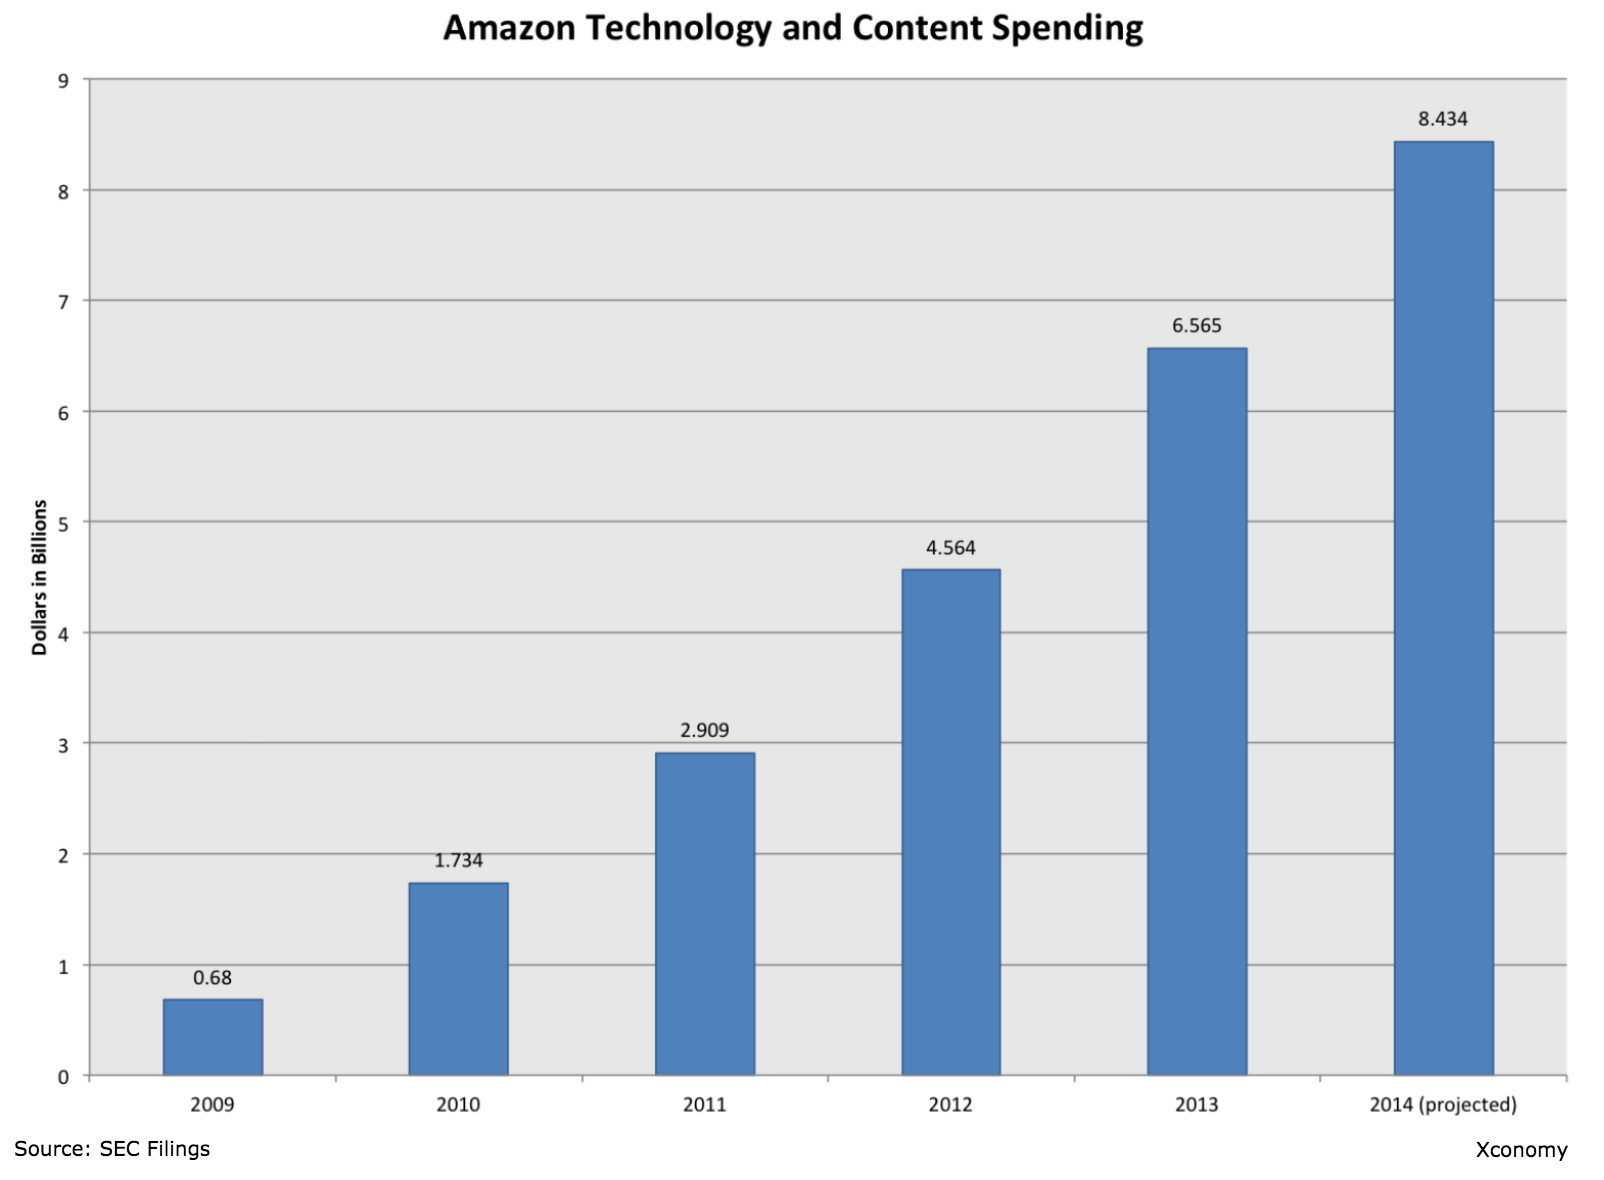 Amazon Tech and Content Spending